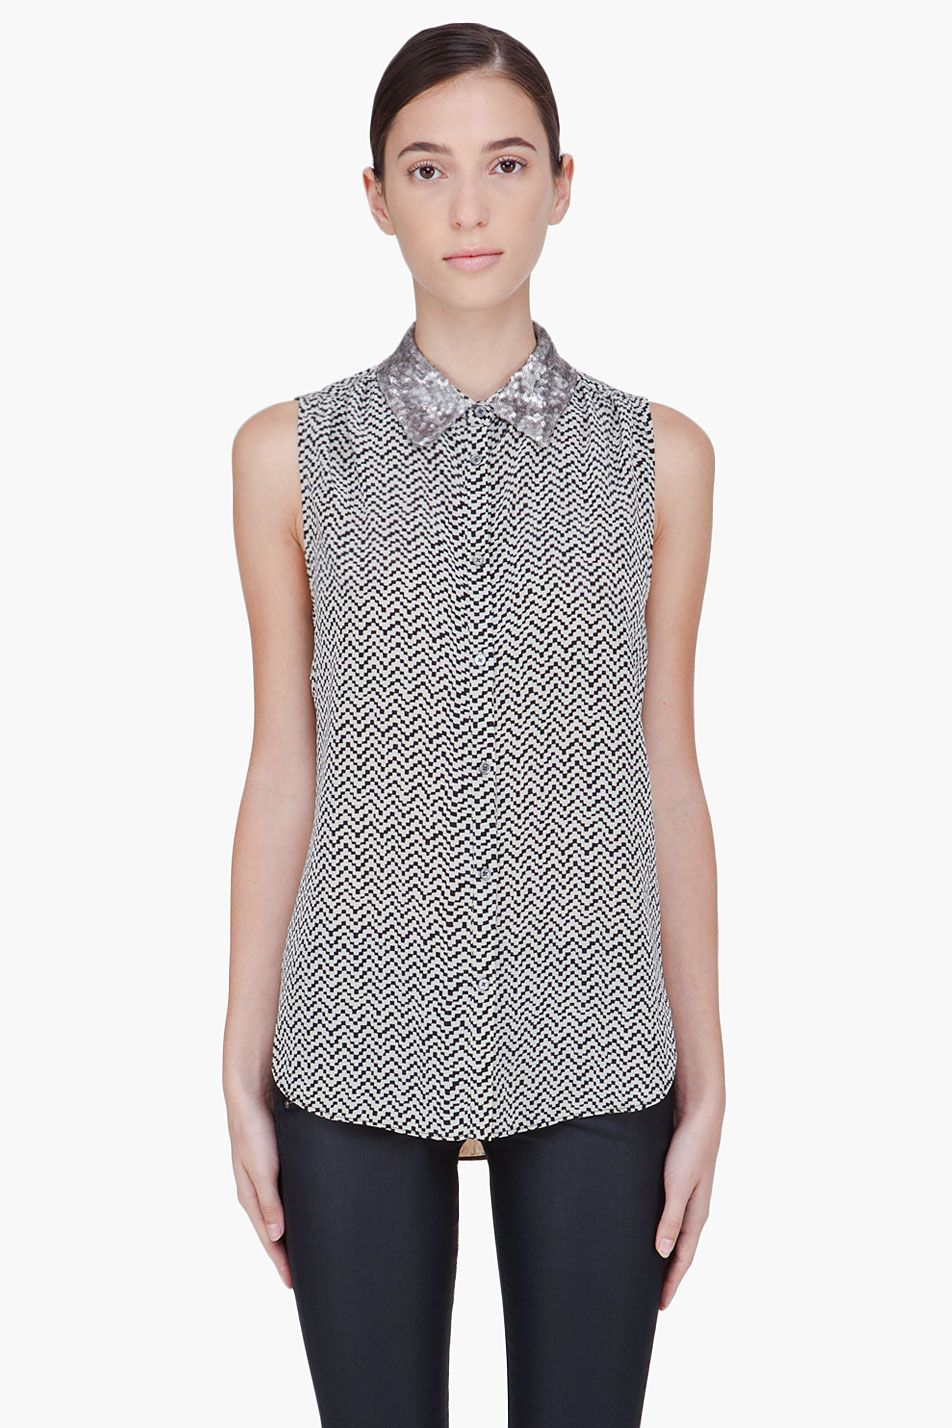 ELIZABETH AND JAMES | Sleeveless geometric front and floral back silk blouse | front